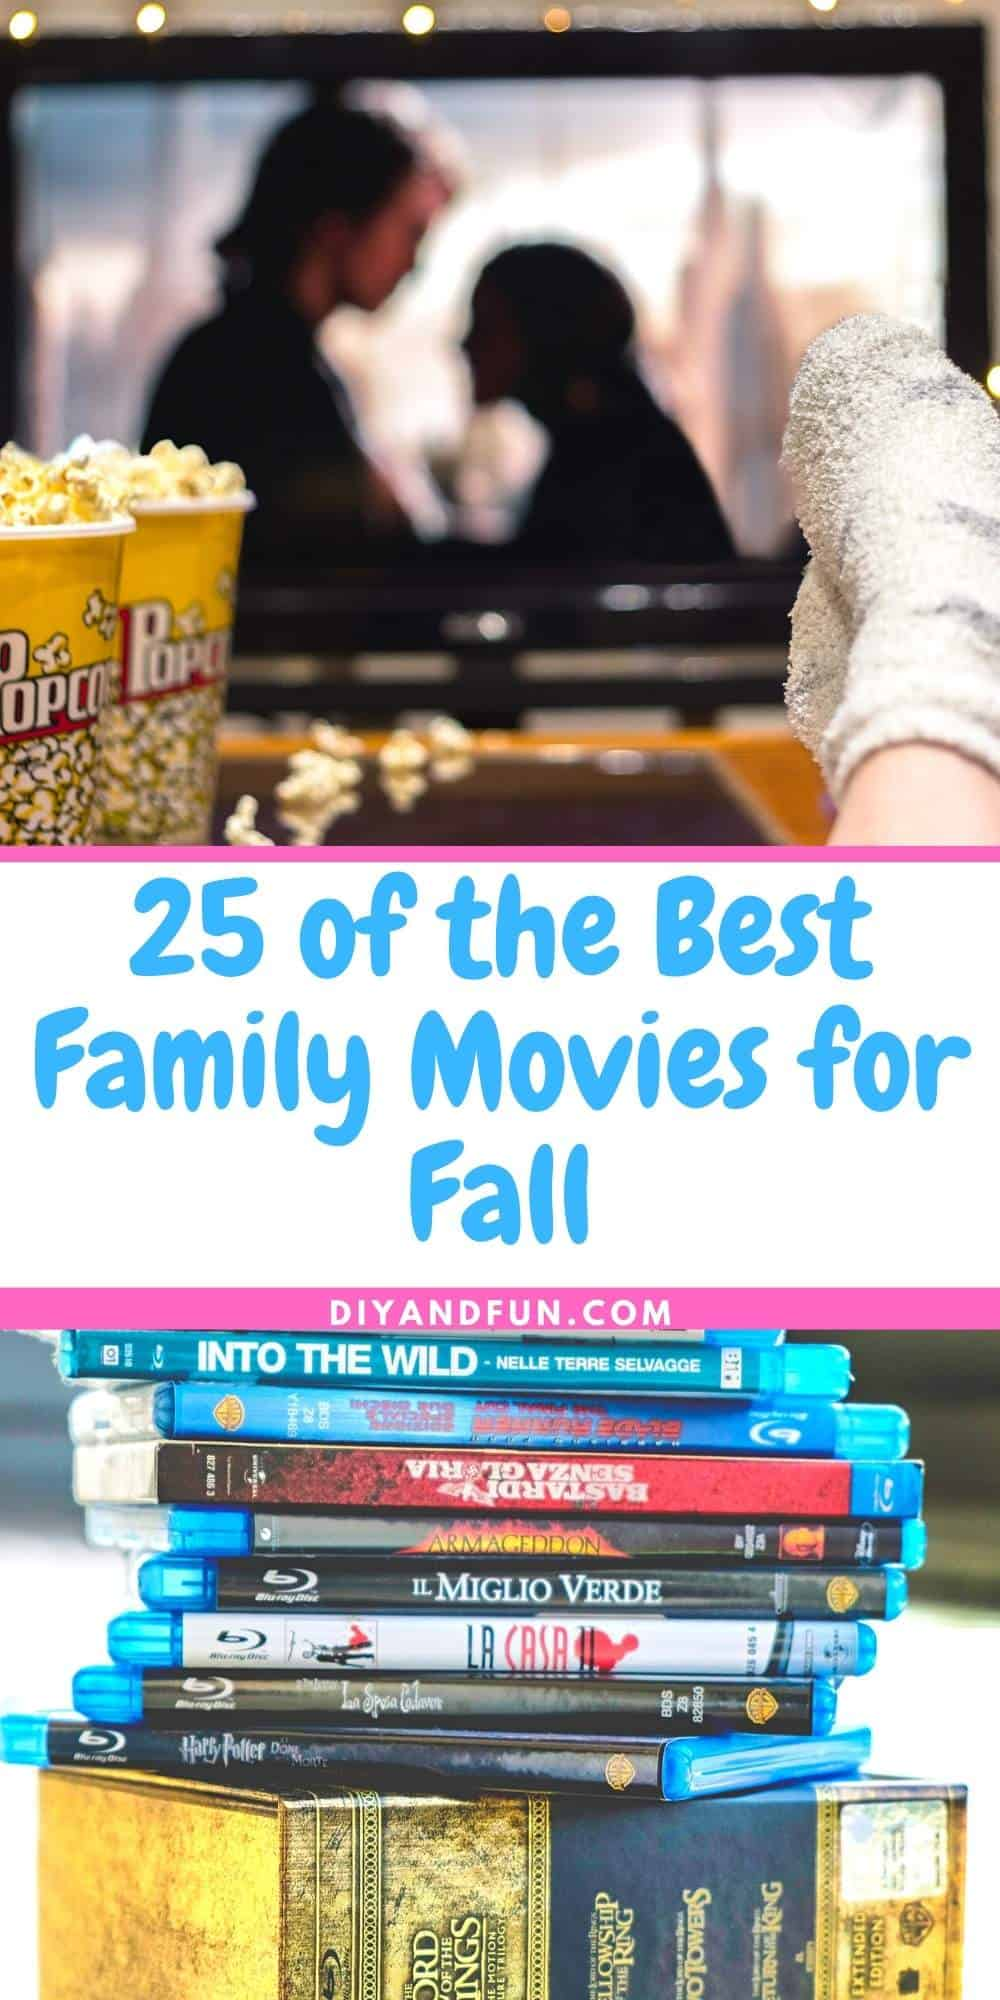 25 of the Best Family Movies for Fall pin